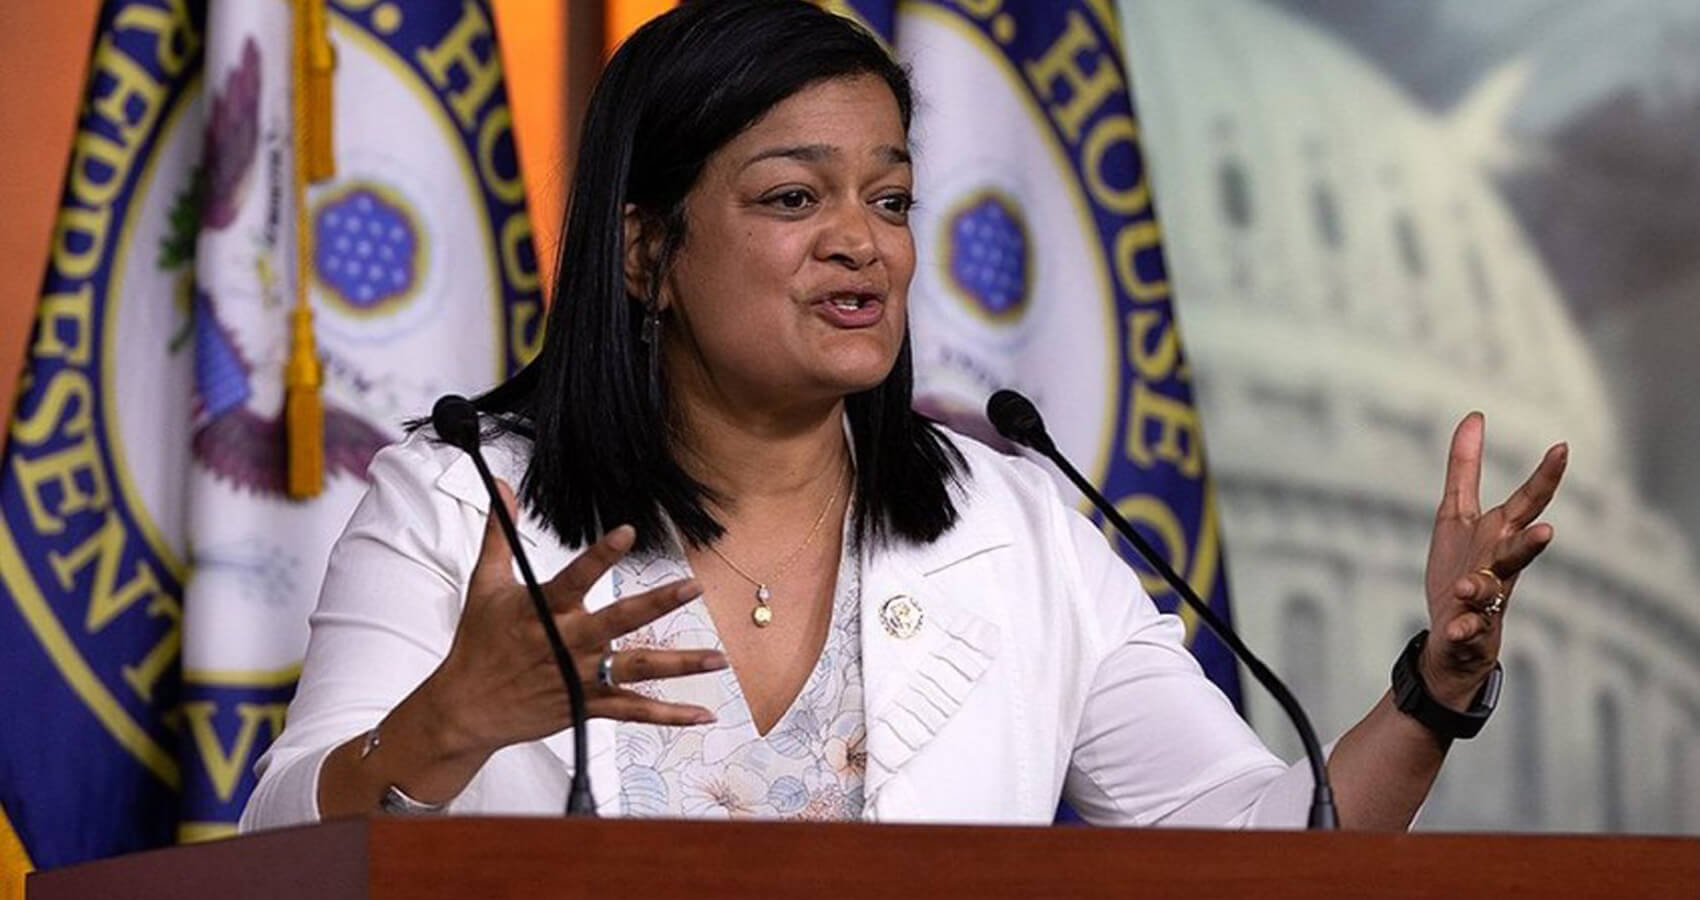 Congresswoman Jayapal Elected Chair of Congressional Progressive Caucus